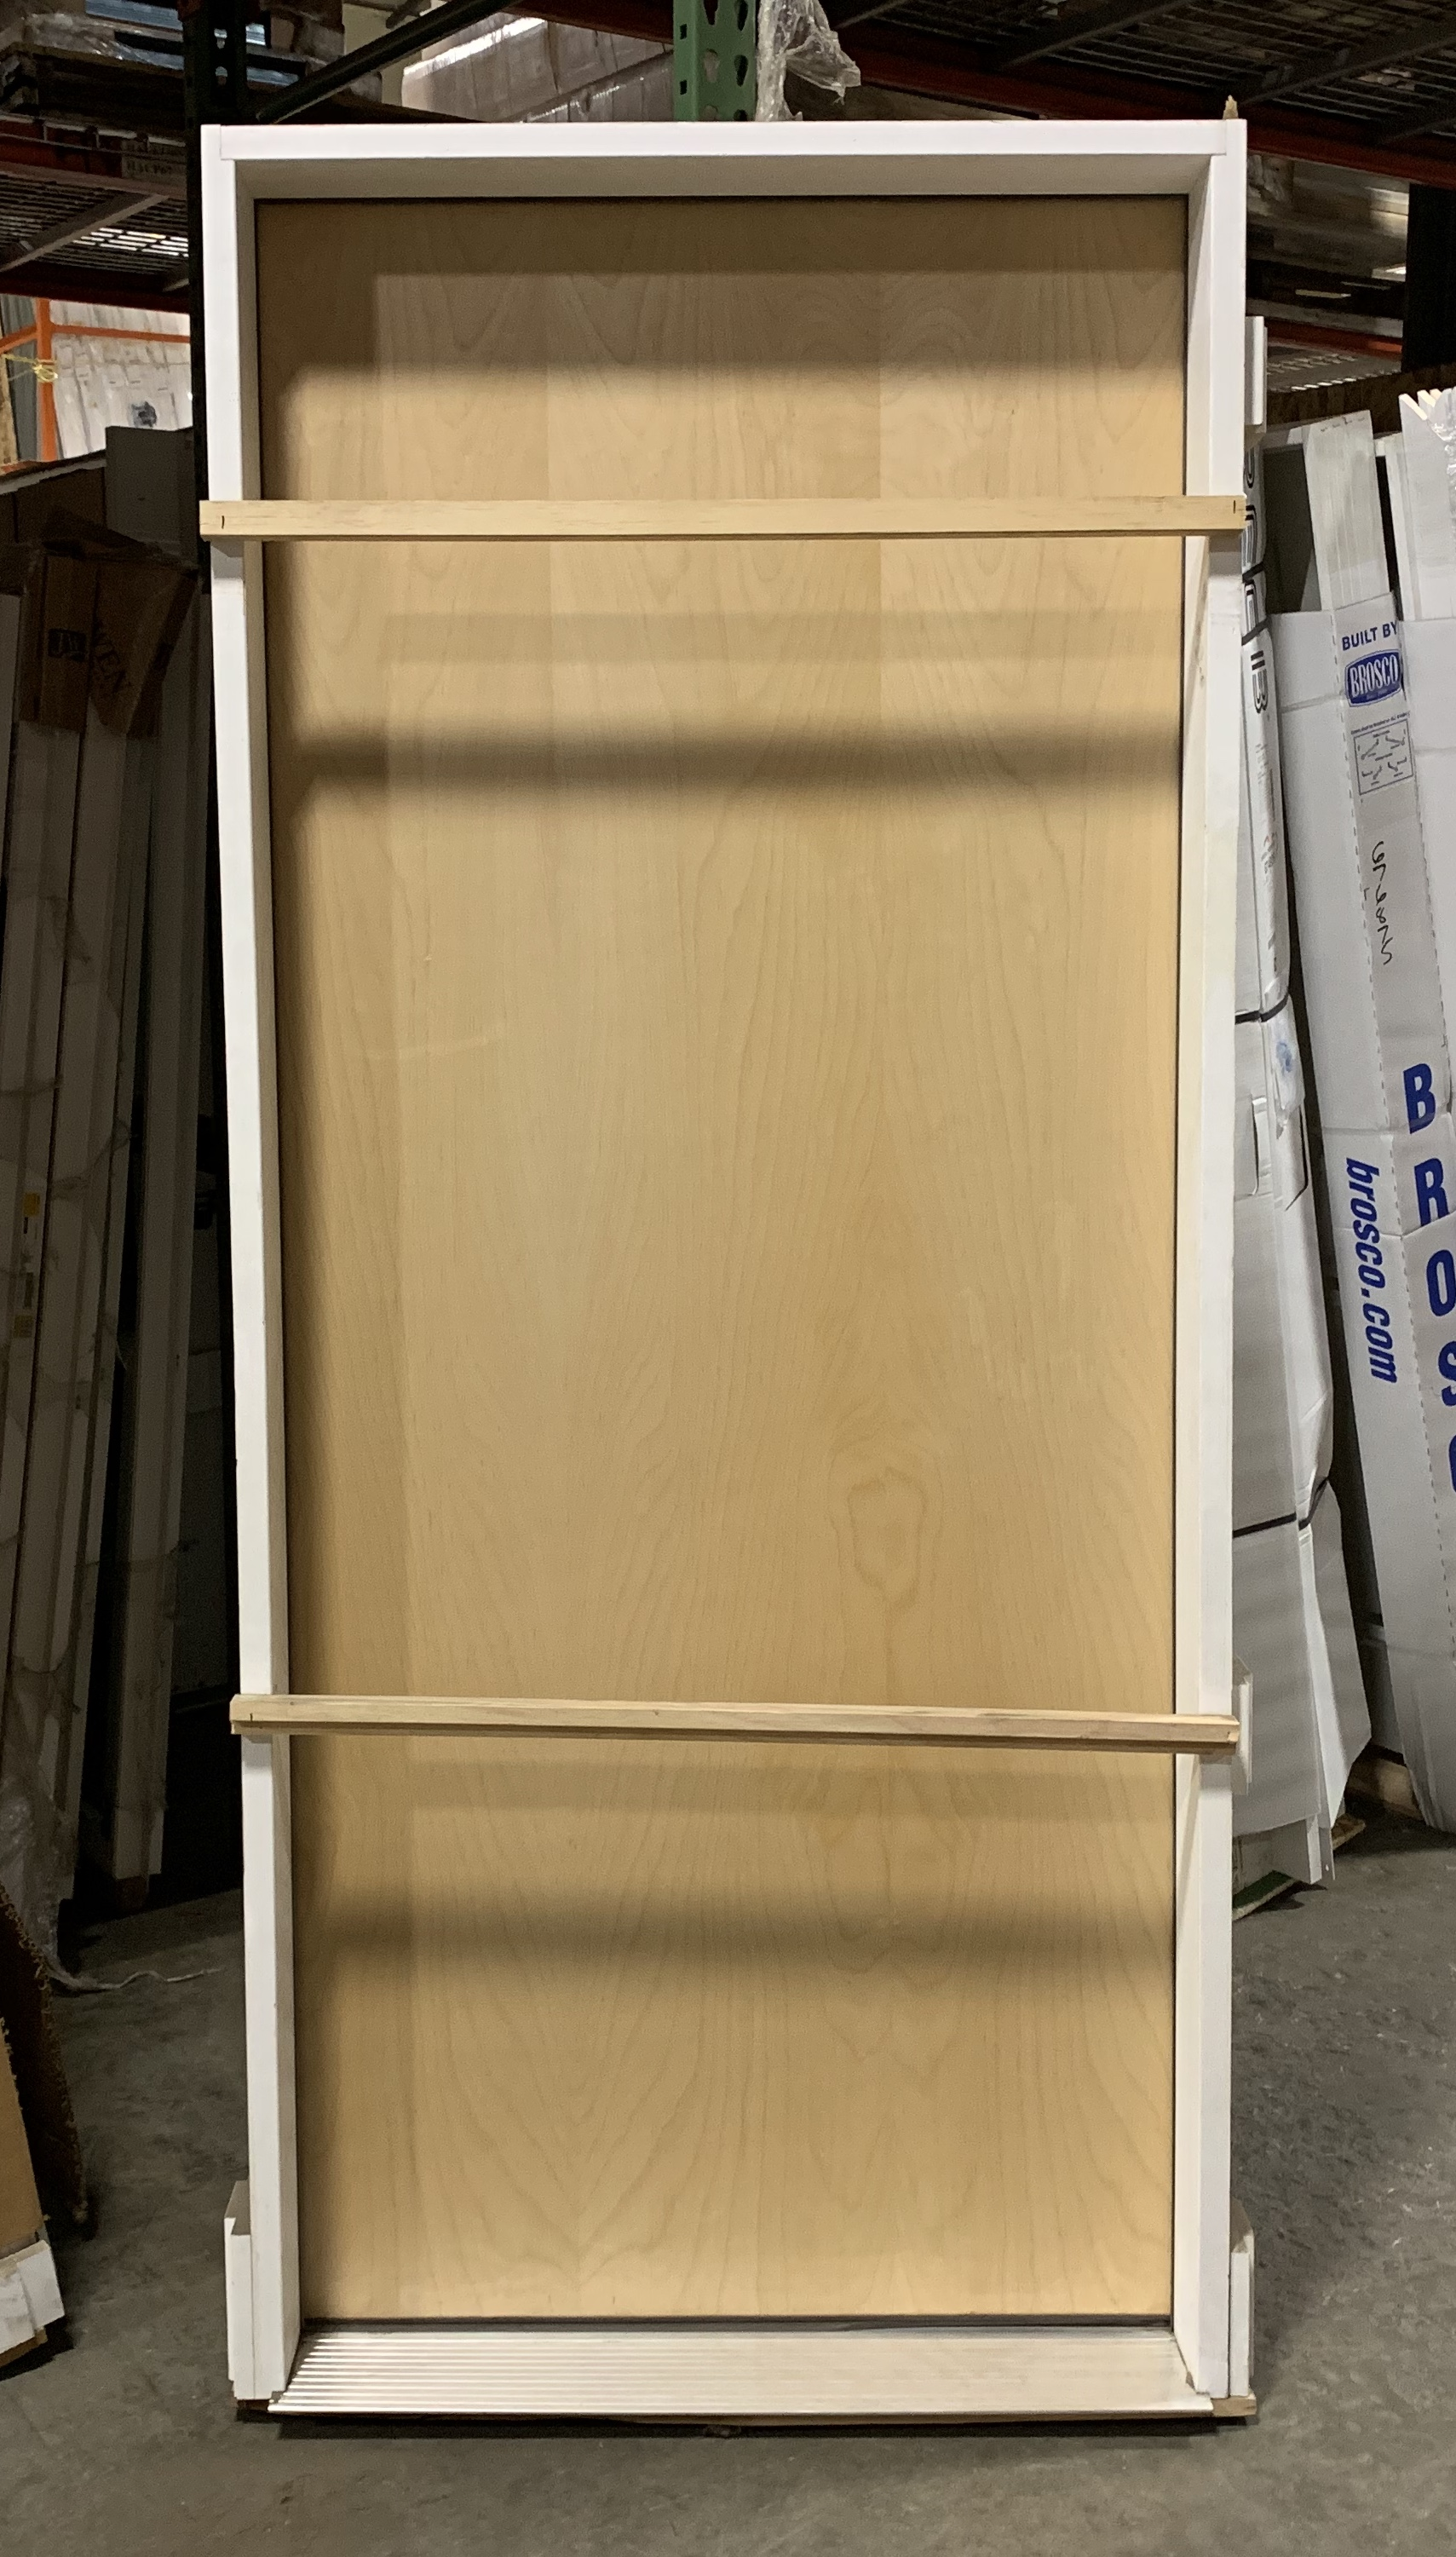 BROSCO 3070 Exterior Birch RHOS Door w/Wood Frame